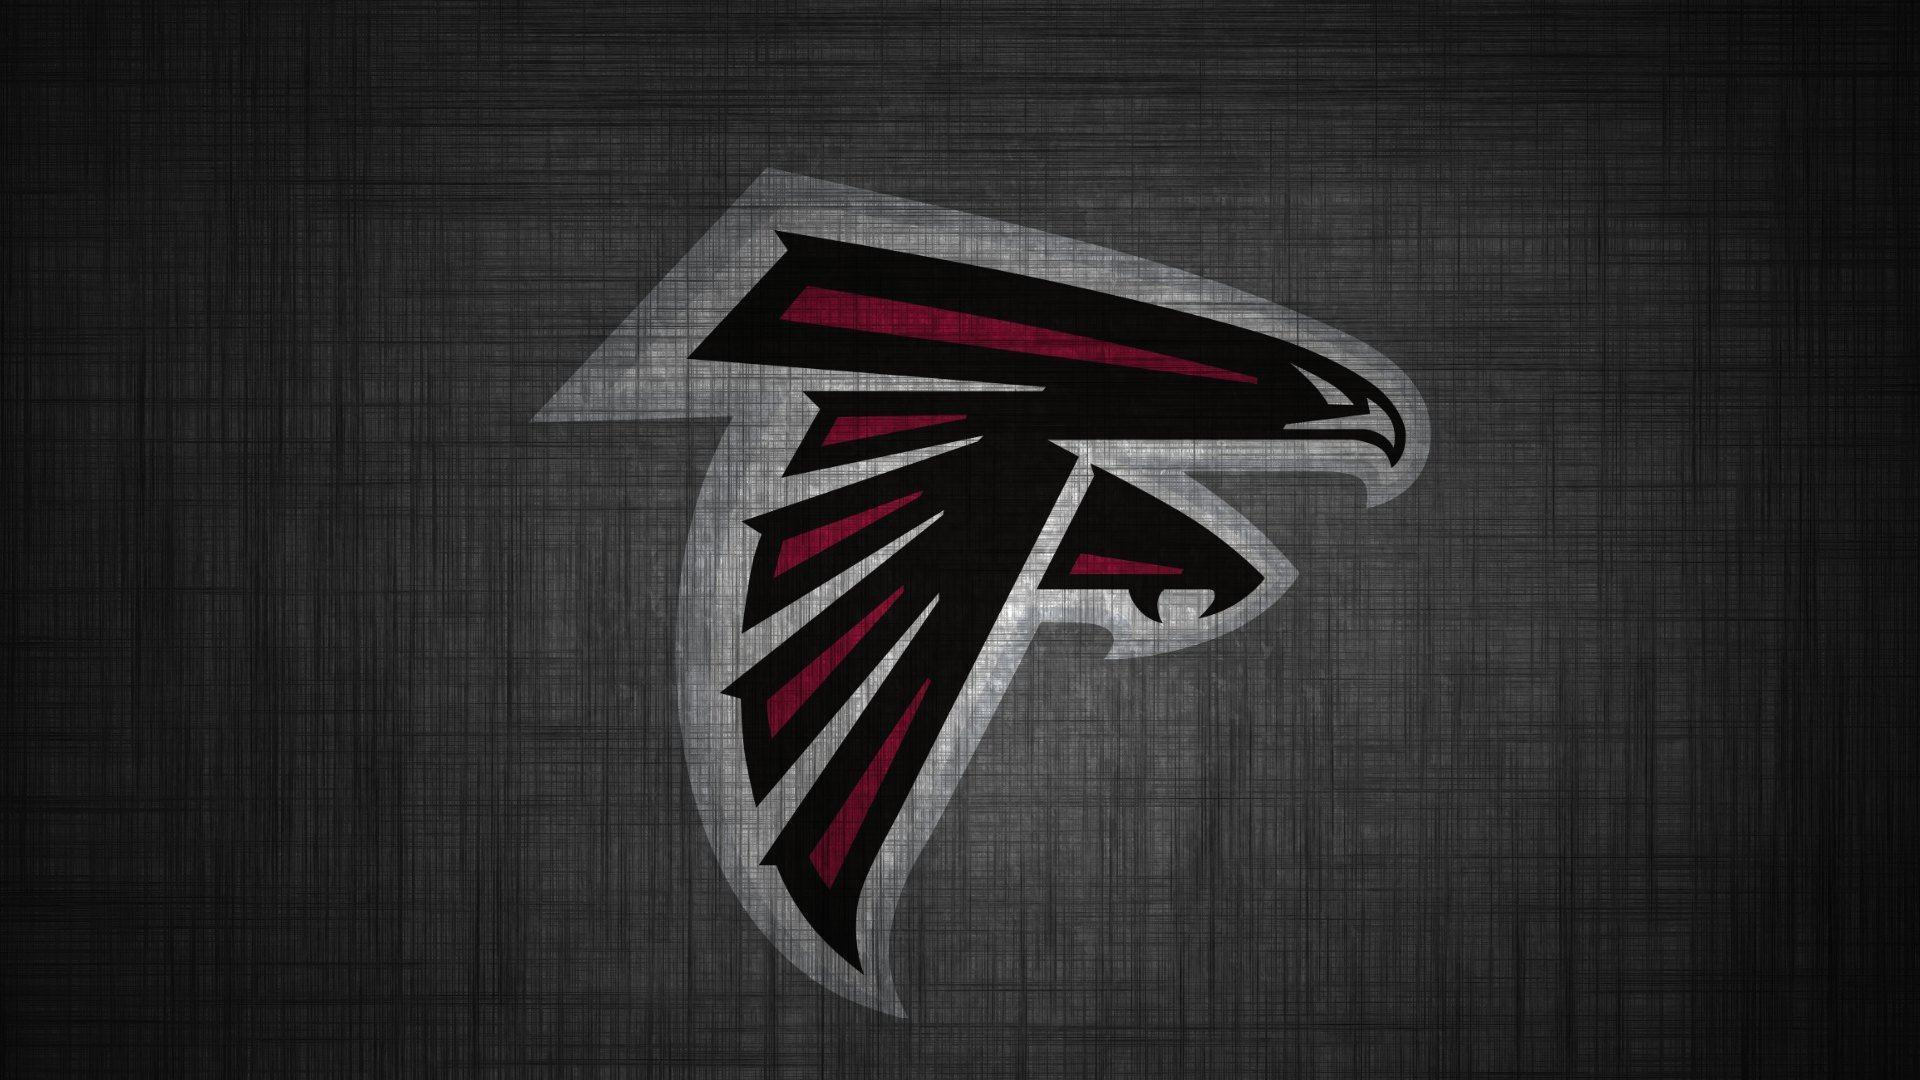 Falcons Picture designs – Give Your Computer a Fresh Look